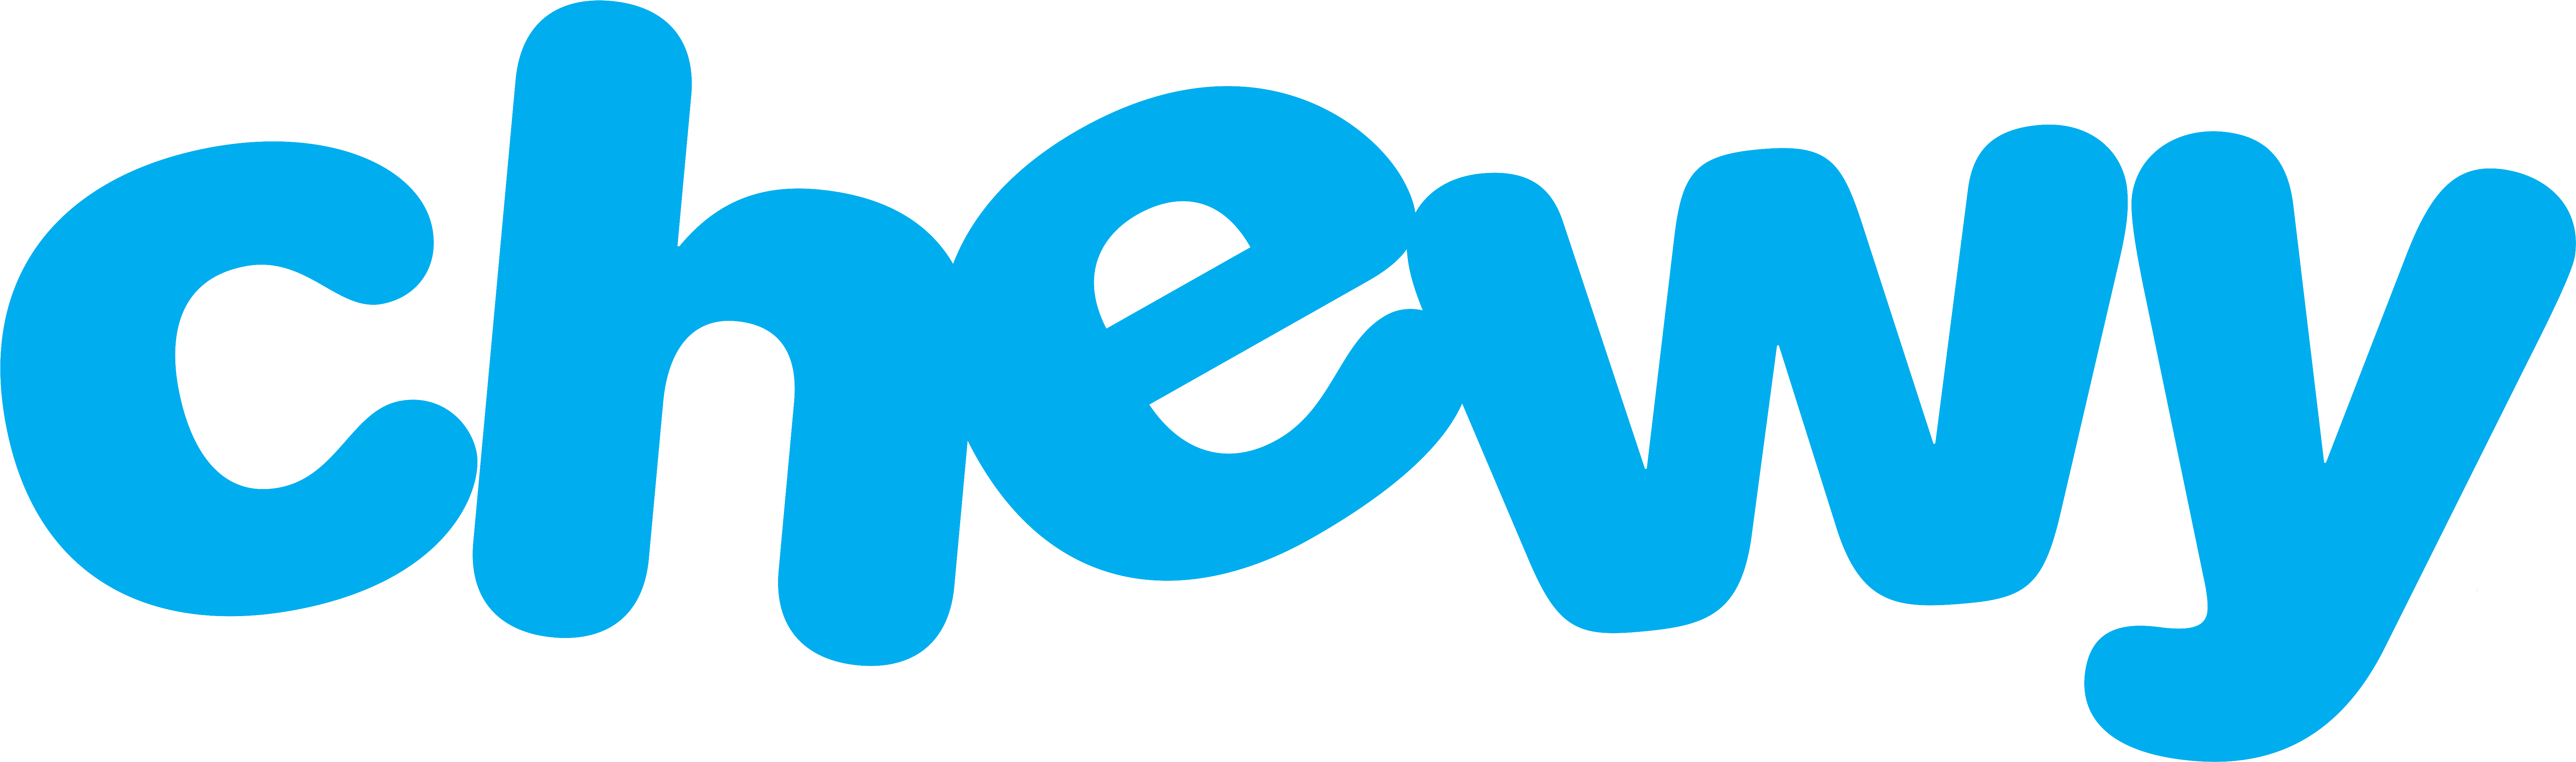 Chewy.